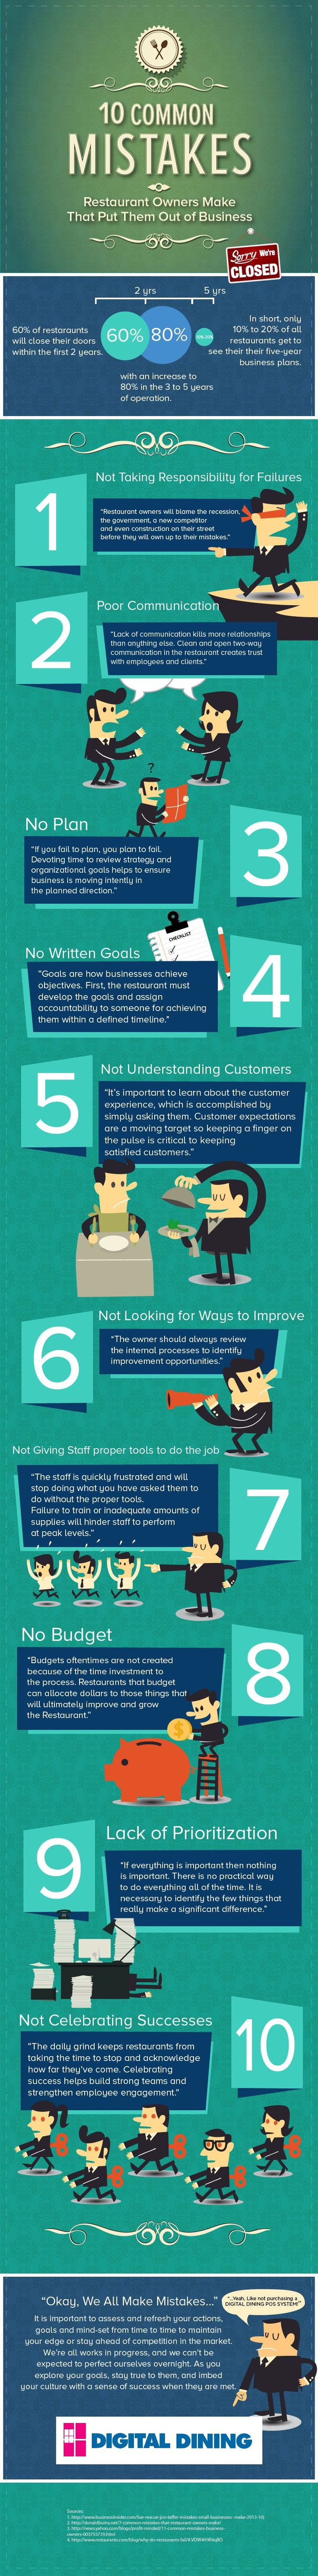 10 Common Mistakes of Restaurant Owners - Digital Dining